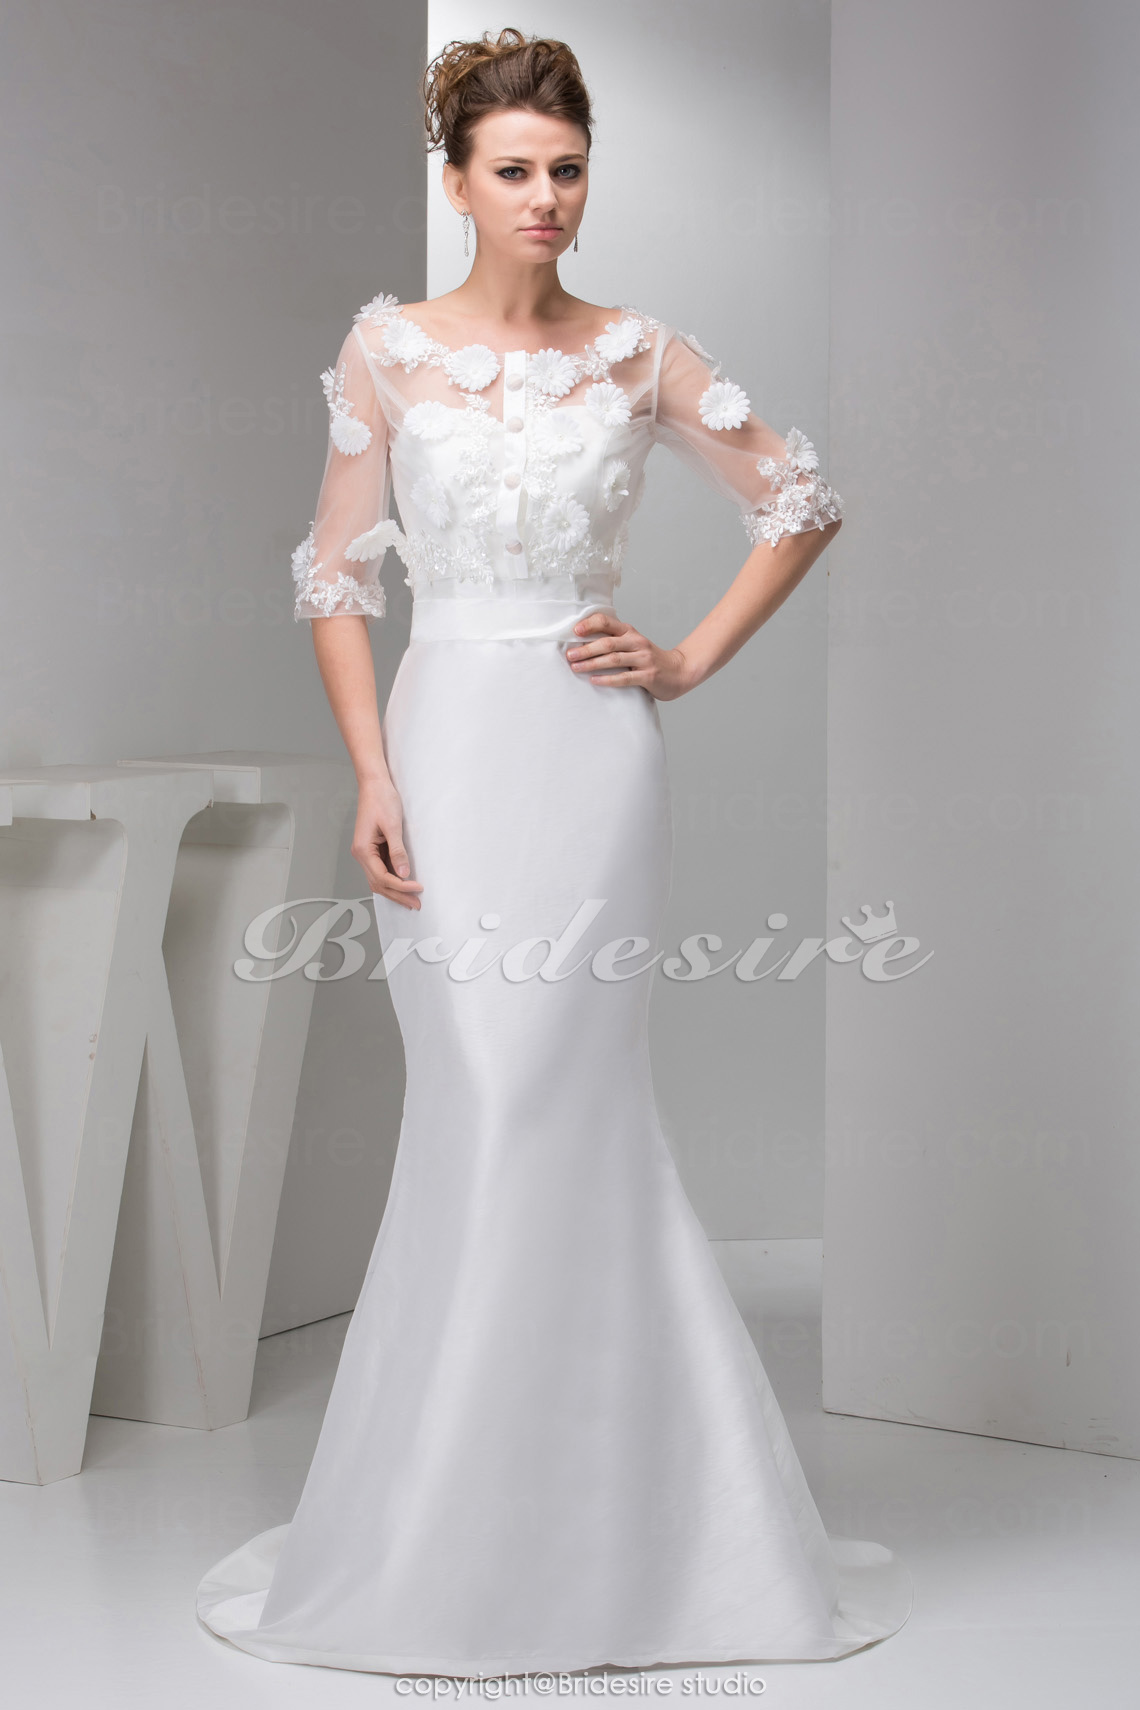 Sheath/Column Bateau Sweep Train Half Sleeve Satin Wedding Dress